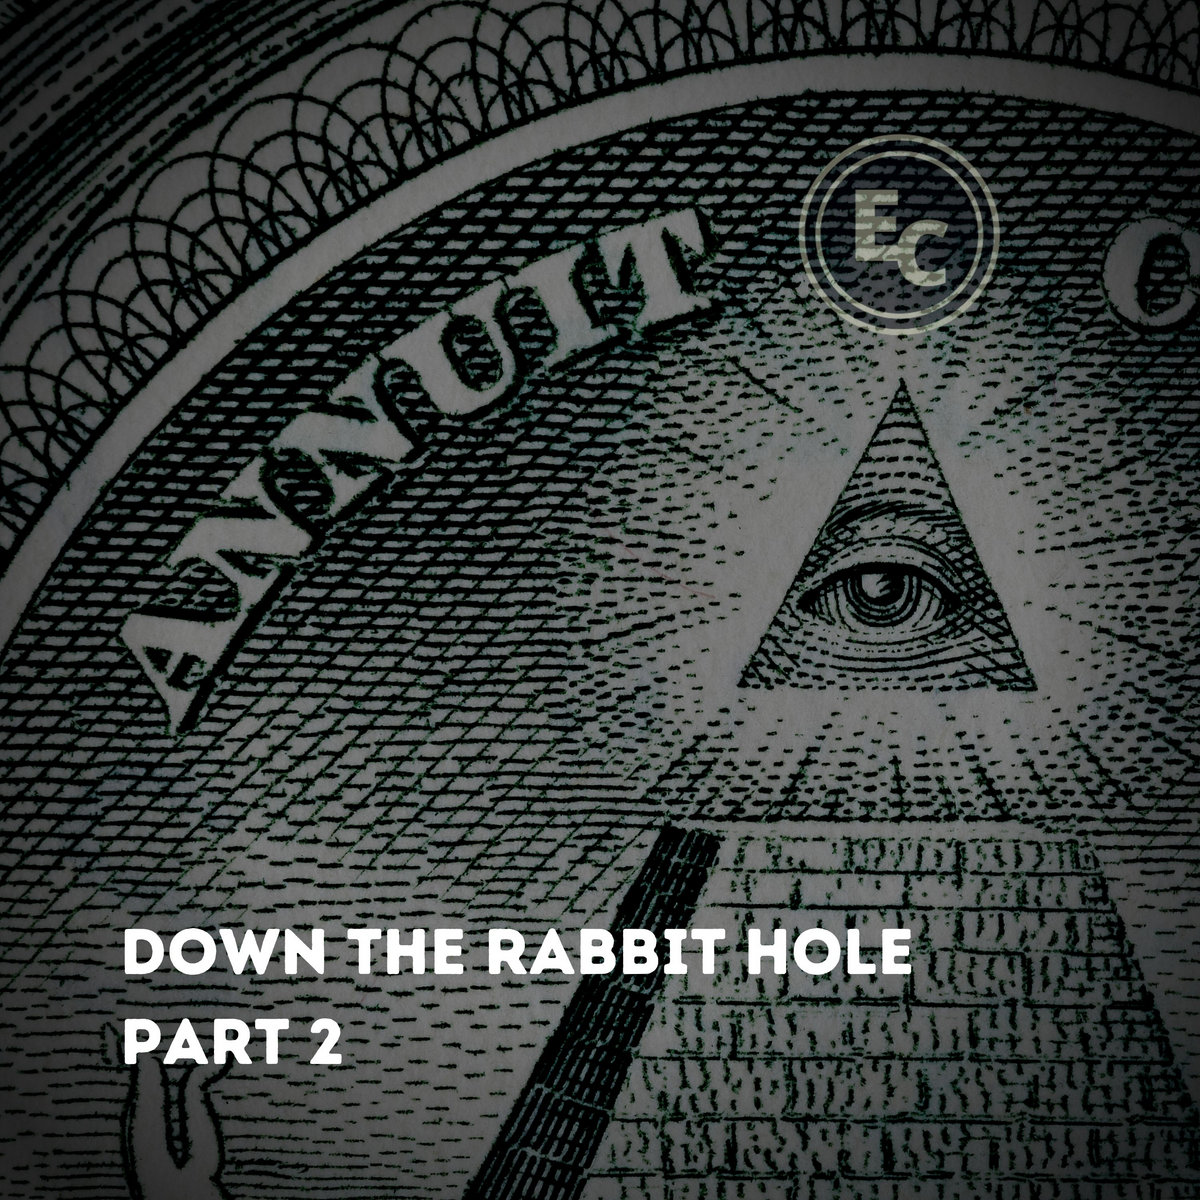 Down the Rabbit Hole Pt.2 by Enigmatic Clergy